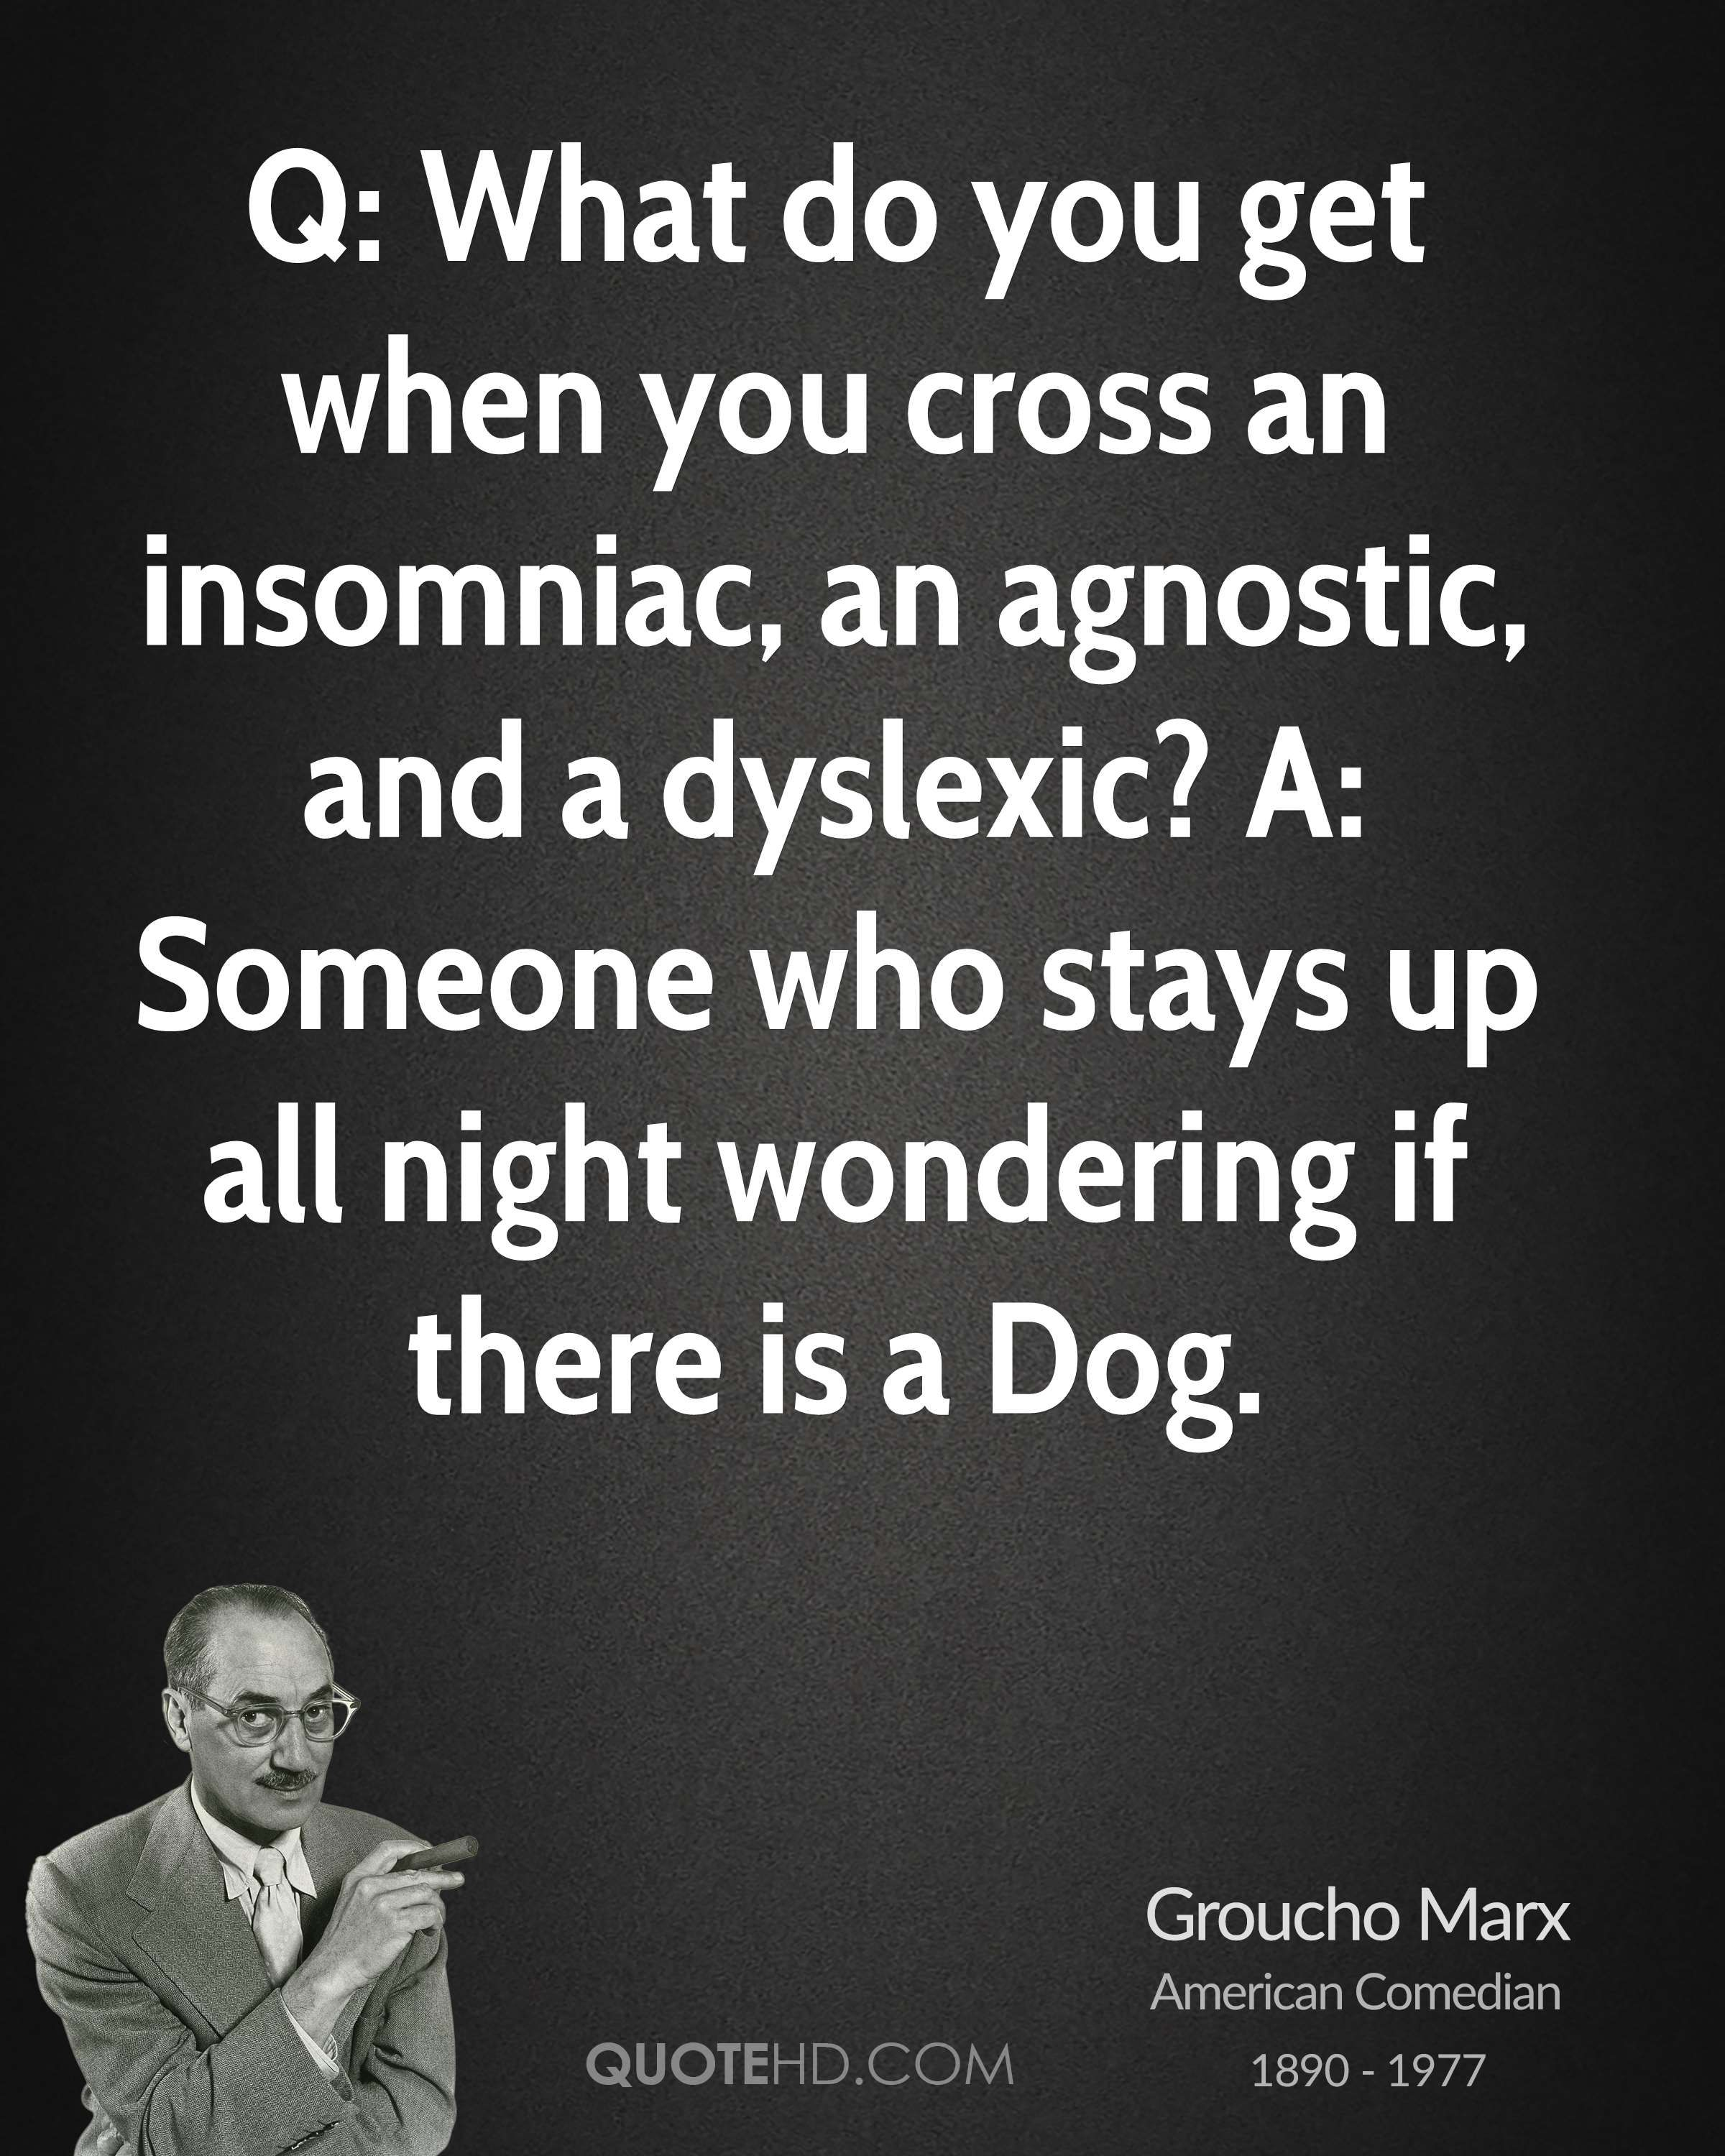 Funny Groucho Marx Quotes: Q: What Do You Get When You Cross An Insomniac, An